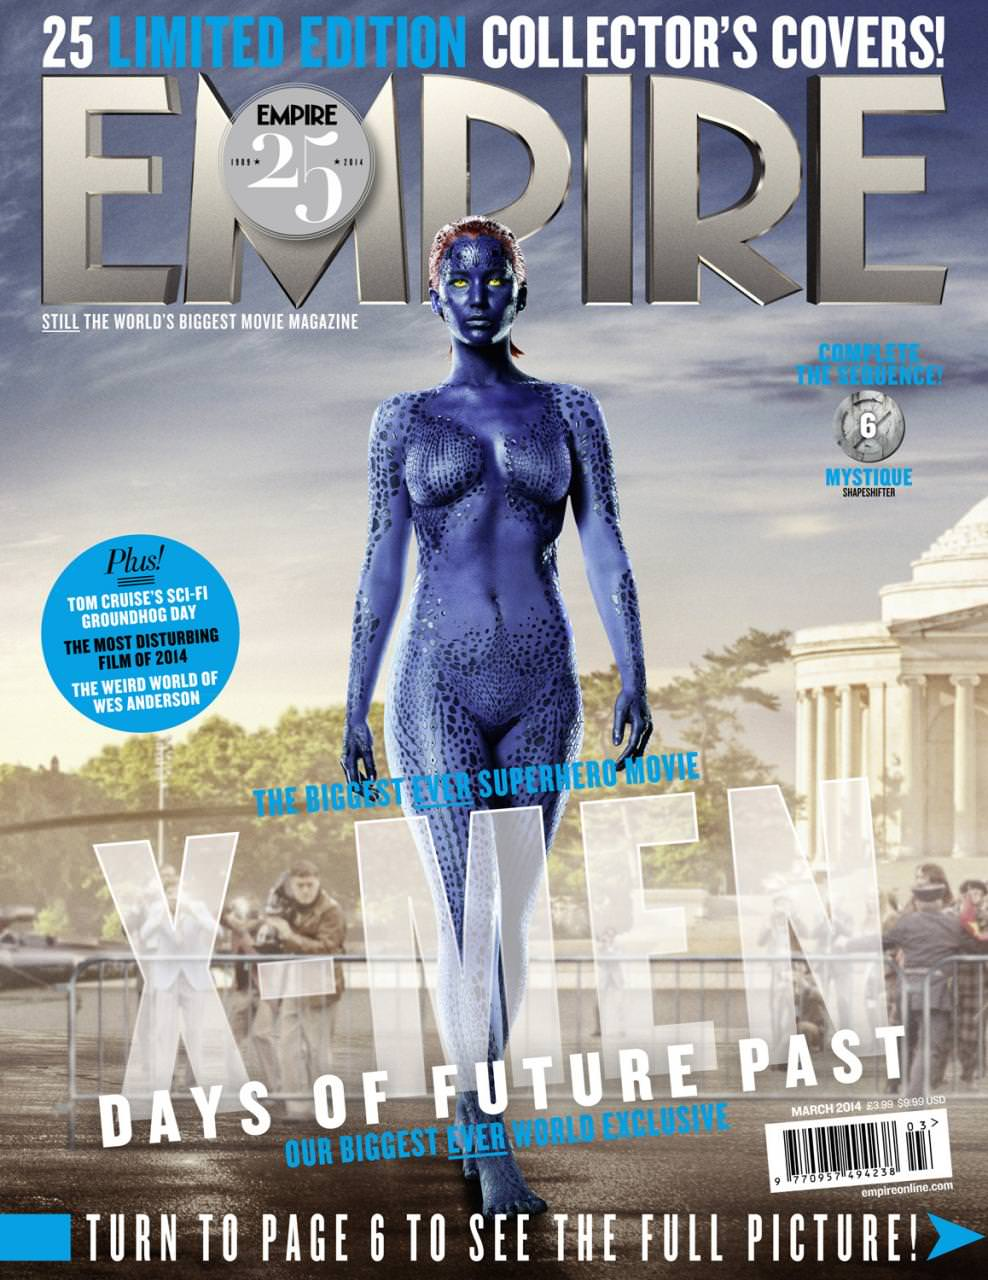 Days_of_Future_Past-Cover6